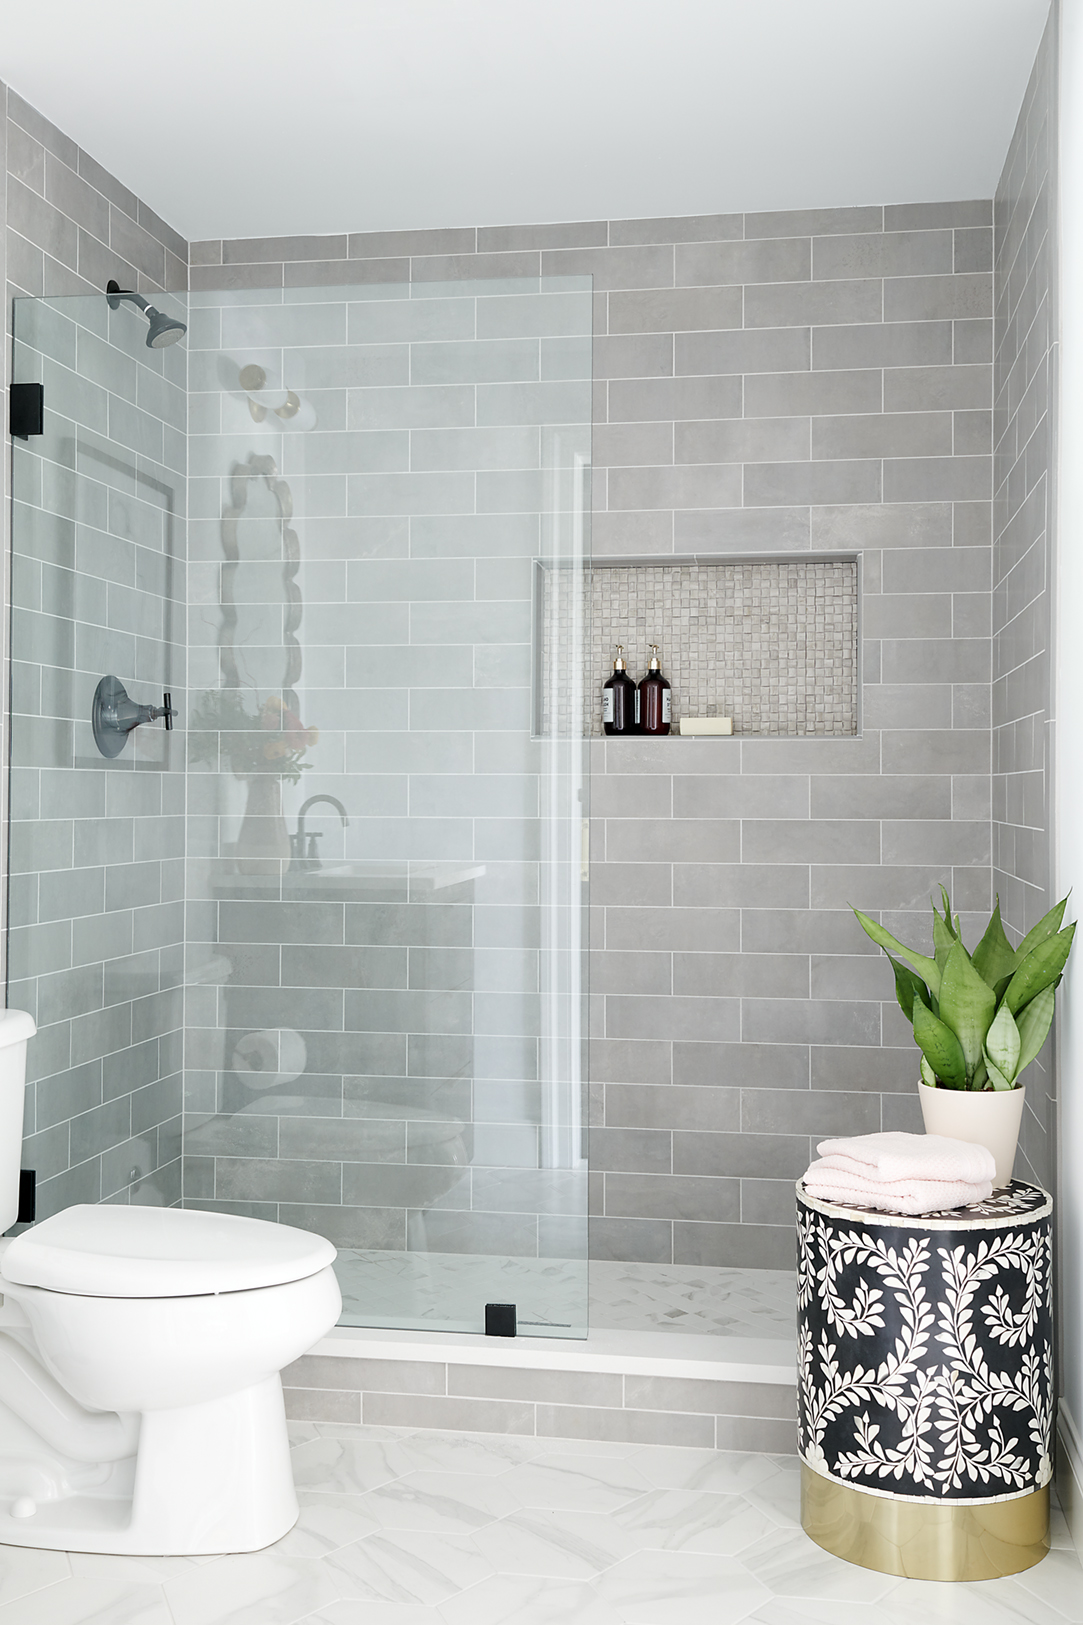 A soft tile palette gives this space a soothing feel.